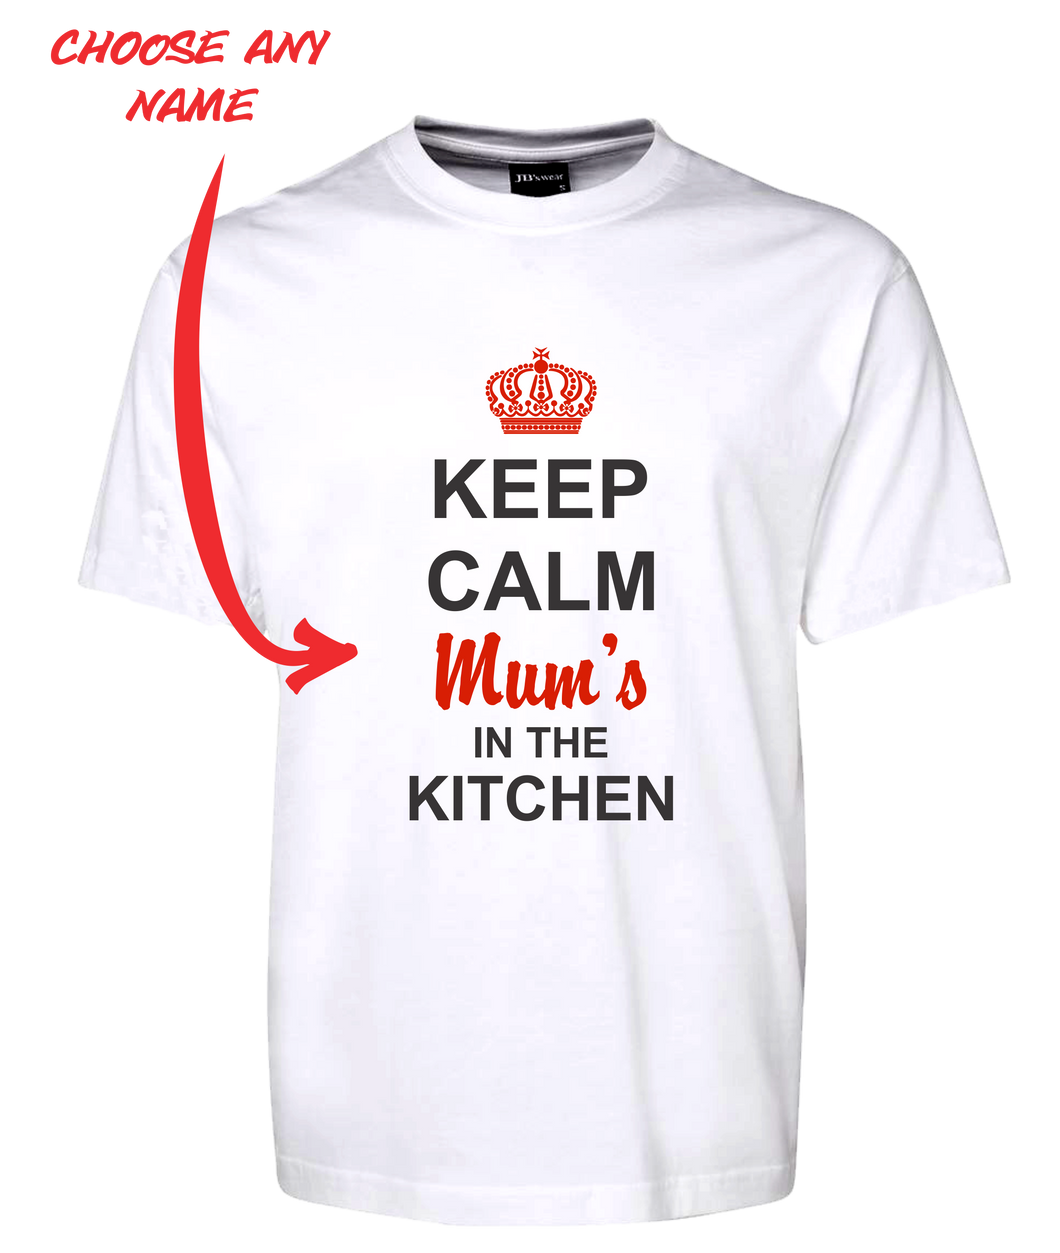 Keep Calm Mum's In The Kitchen Tee T-Shirt For Mother's Day Birthday